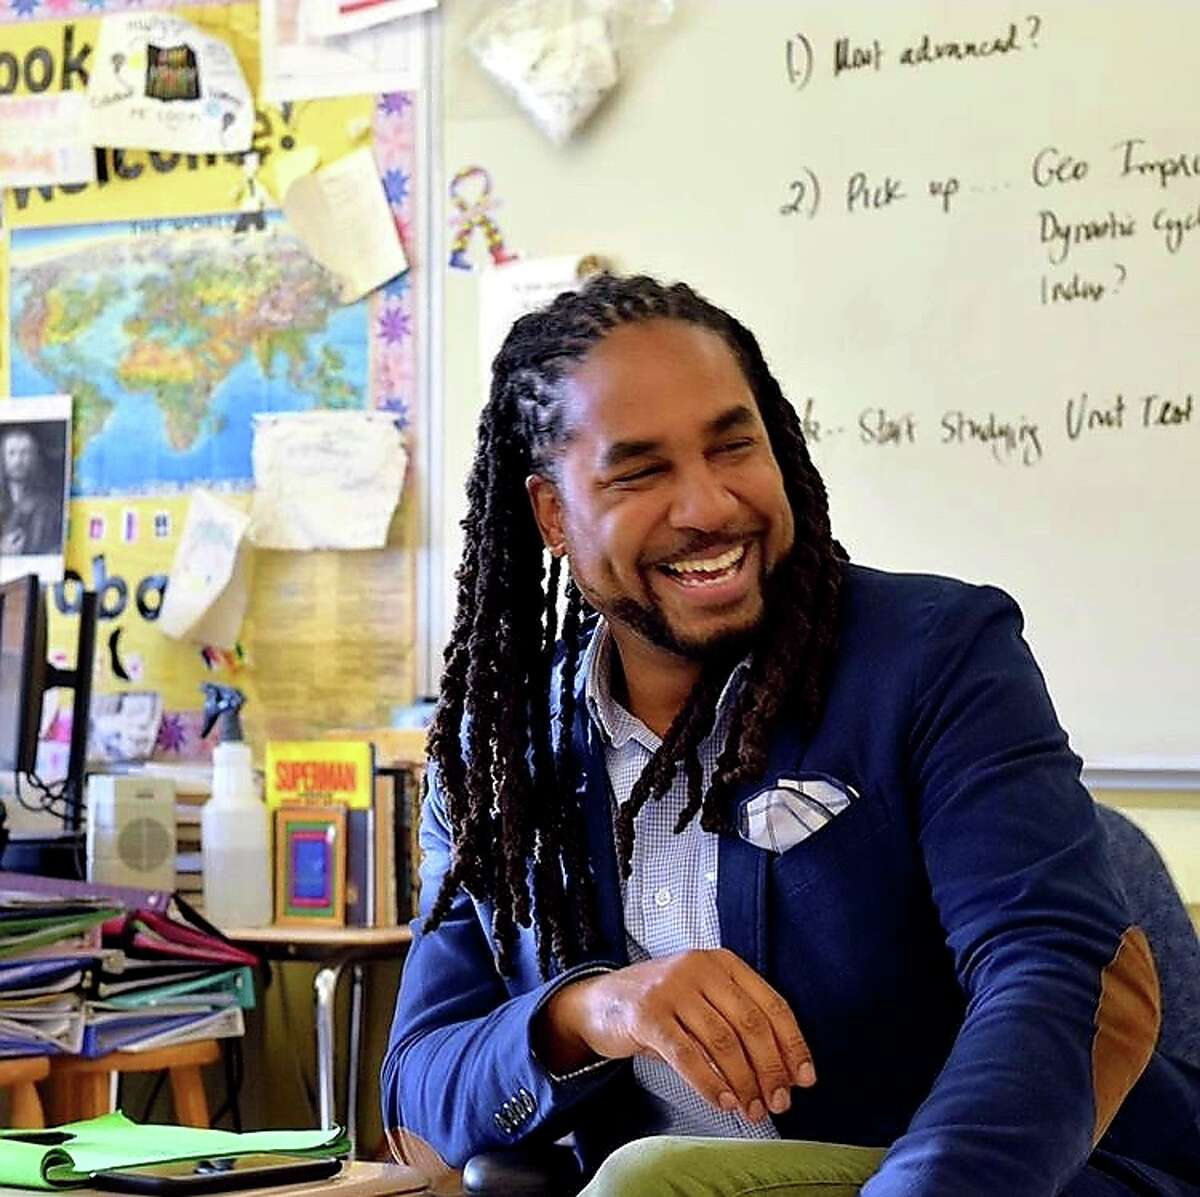 """A question Cook often gets from skeptical students in his Black history class is, """"Why are you making this about me when I didn't have anything to do with [slavery]?"""" He relishes the opportunity to help students understand the value of learning history and applying it to current events."""